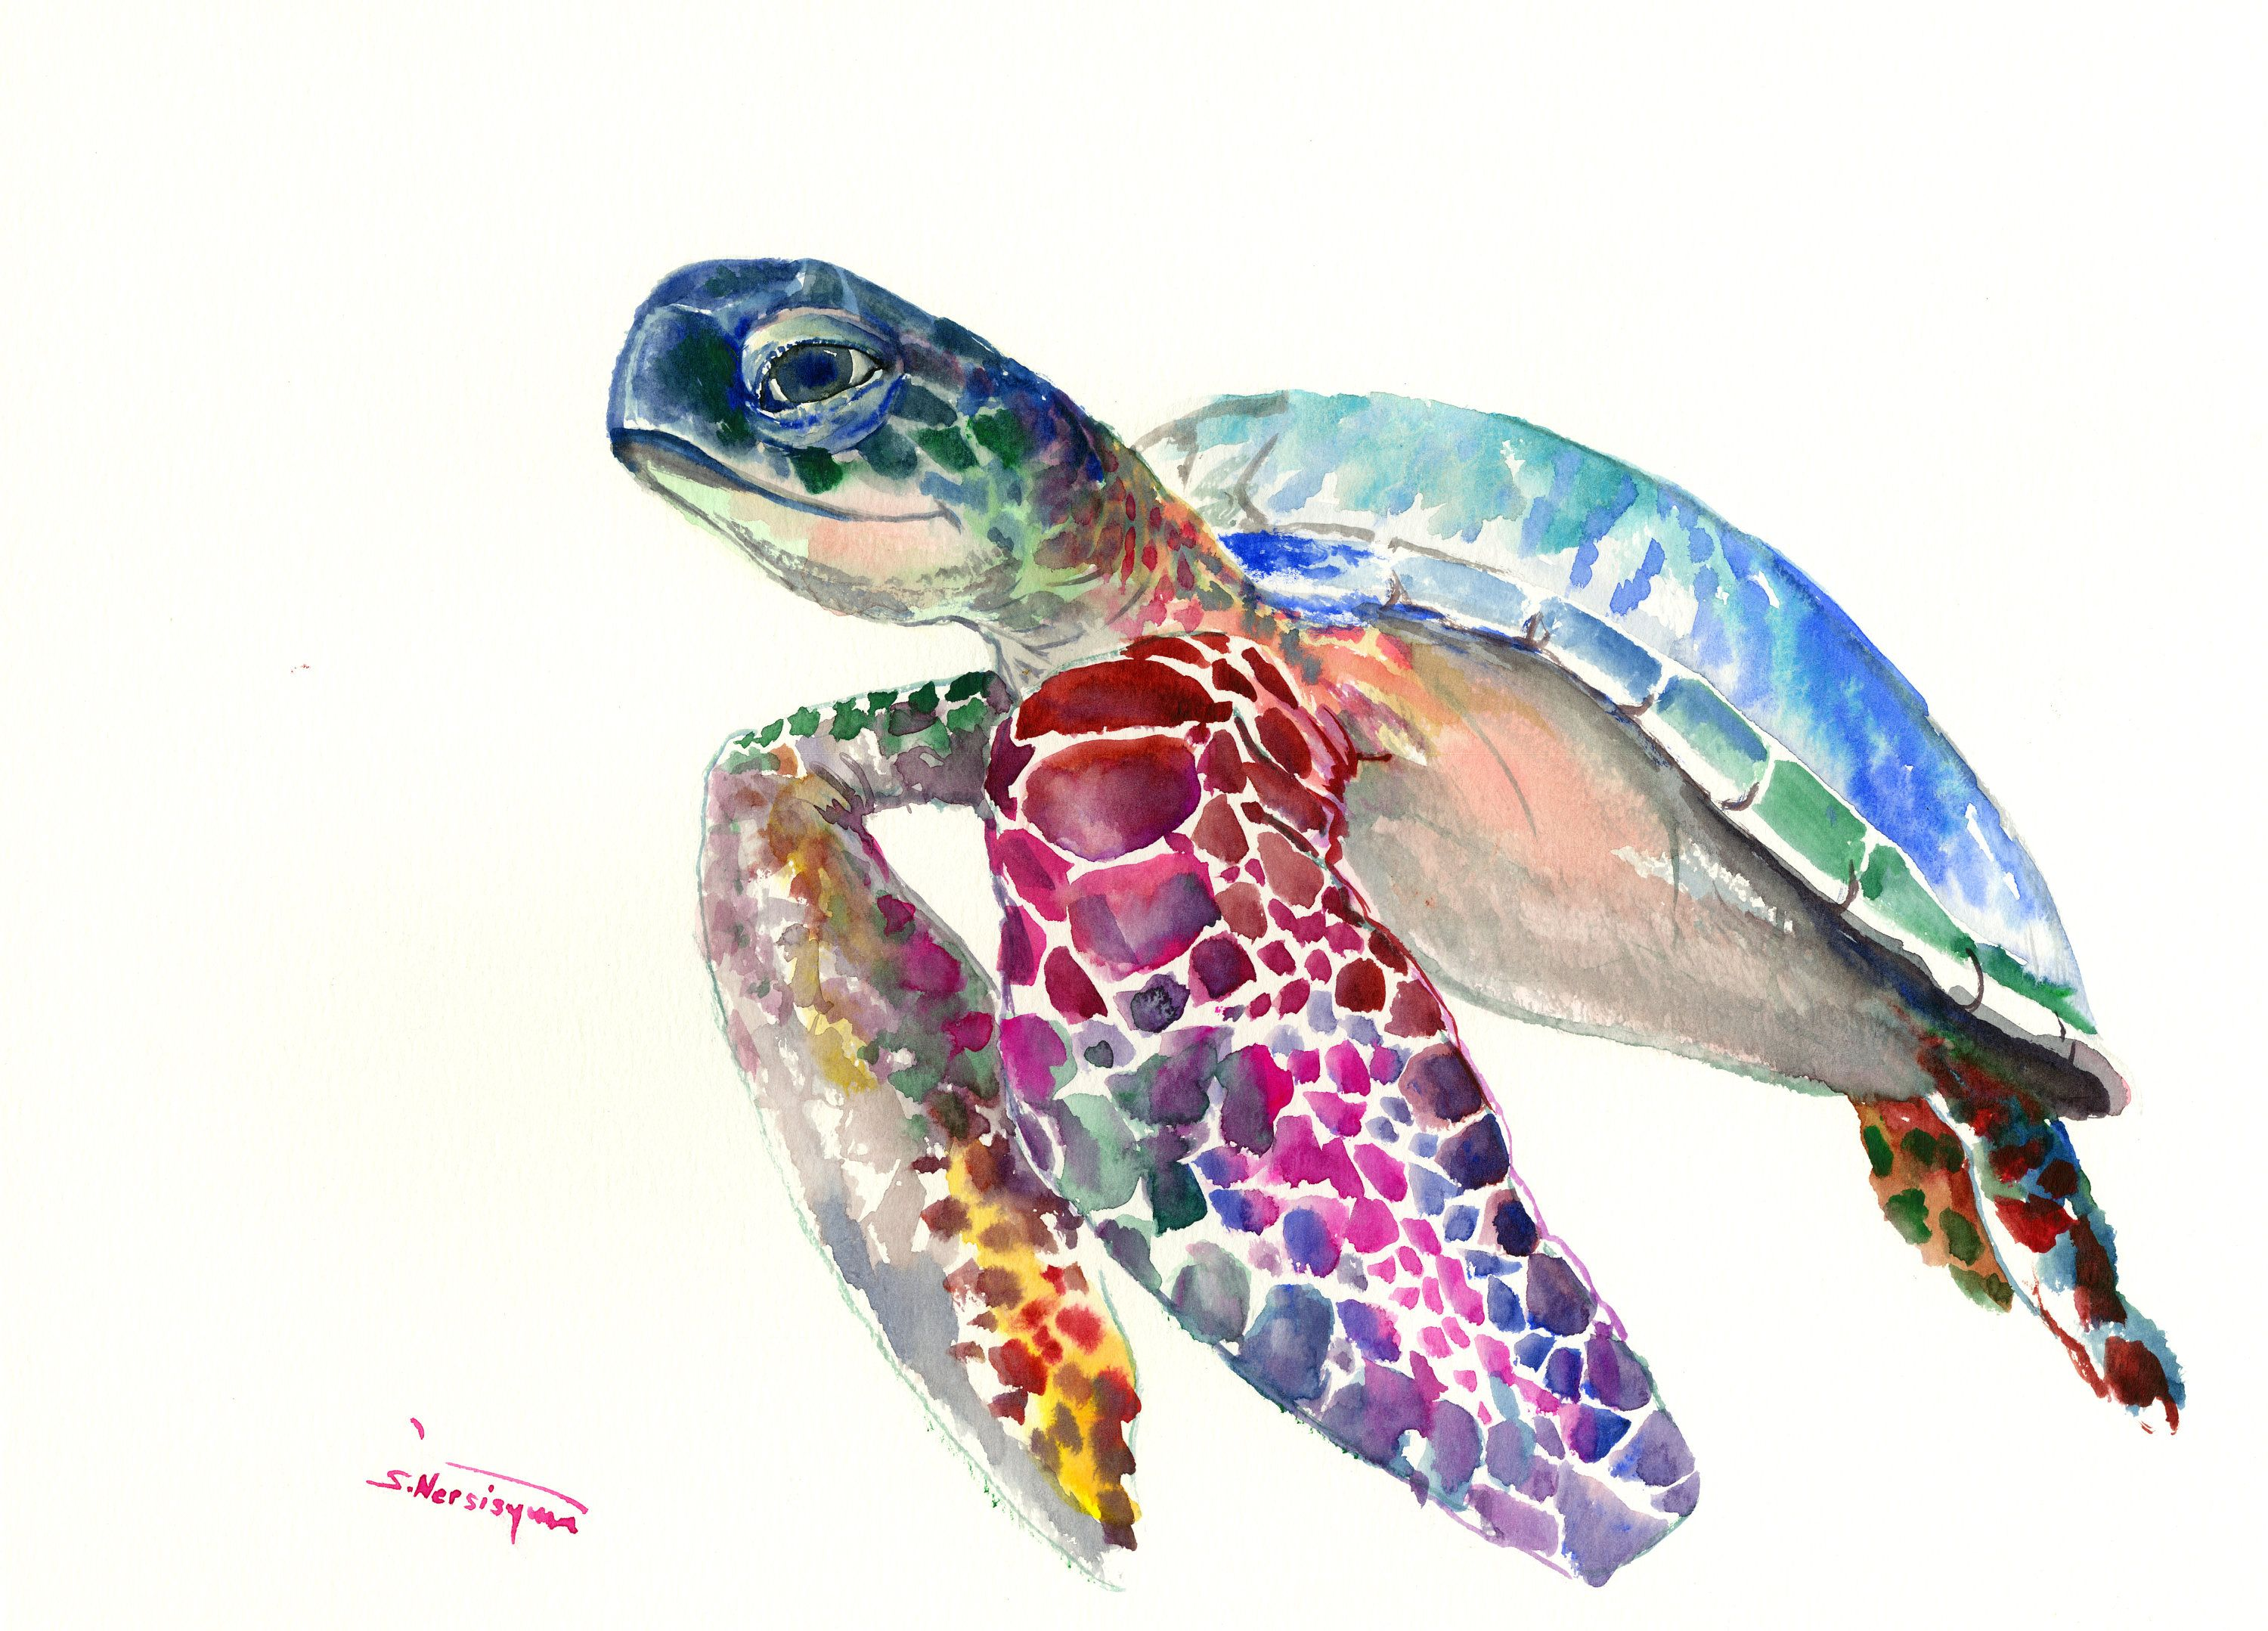 Sea Turtle Painting Original Watercolor Painting 15 X 11 In Blue Nautical Wall Art Light Blue Minimalist By Originalo Turtle Art Lovers Art Turtle Painting